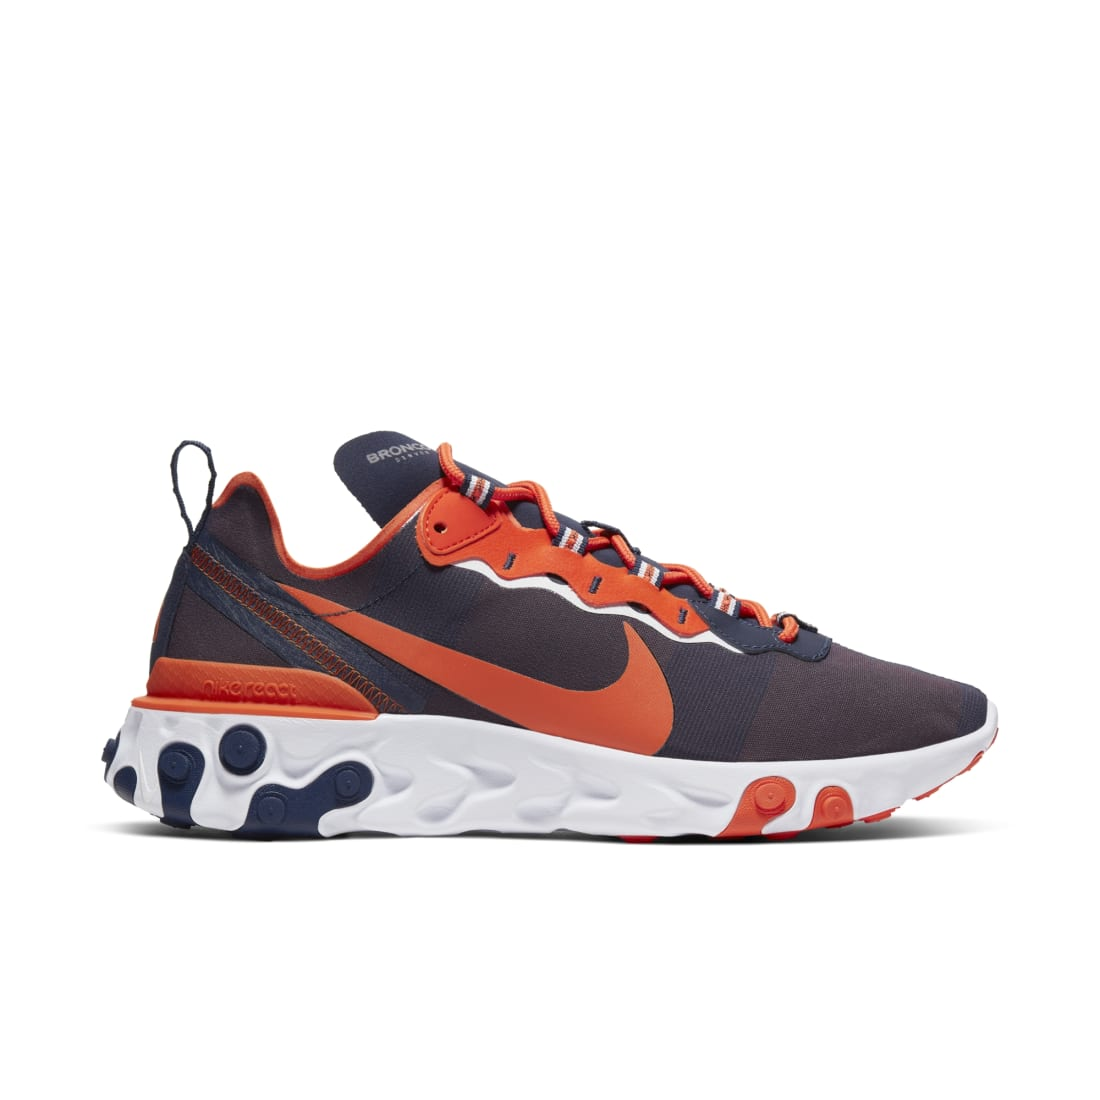 Nike React Element 55 Denver Broncos